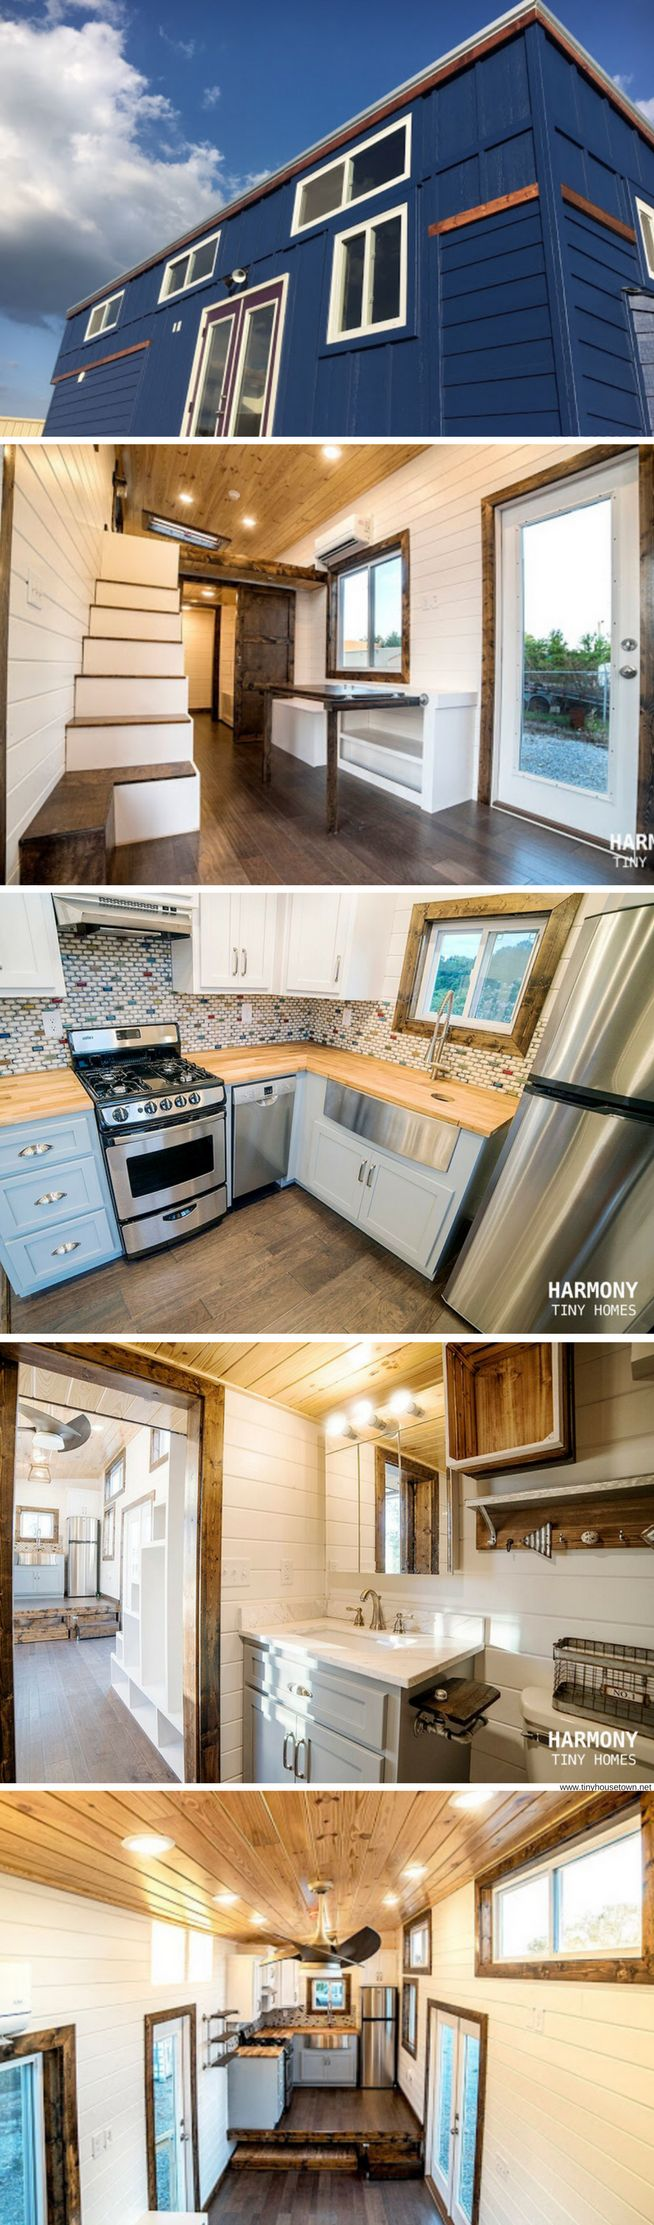 The Blue Moon from Harmony Tiny Homes